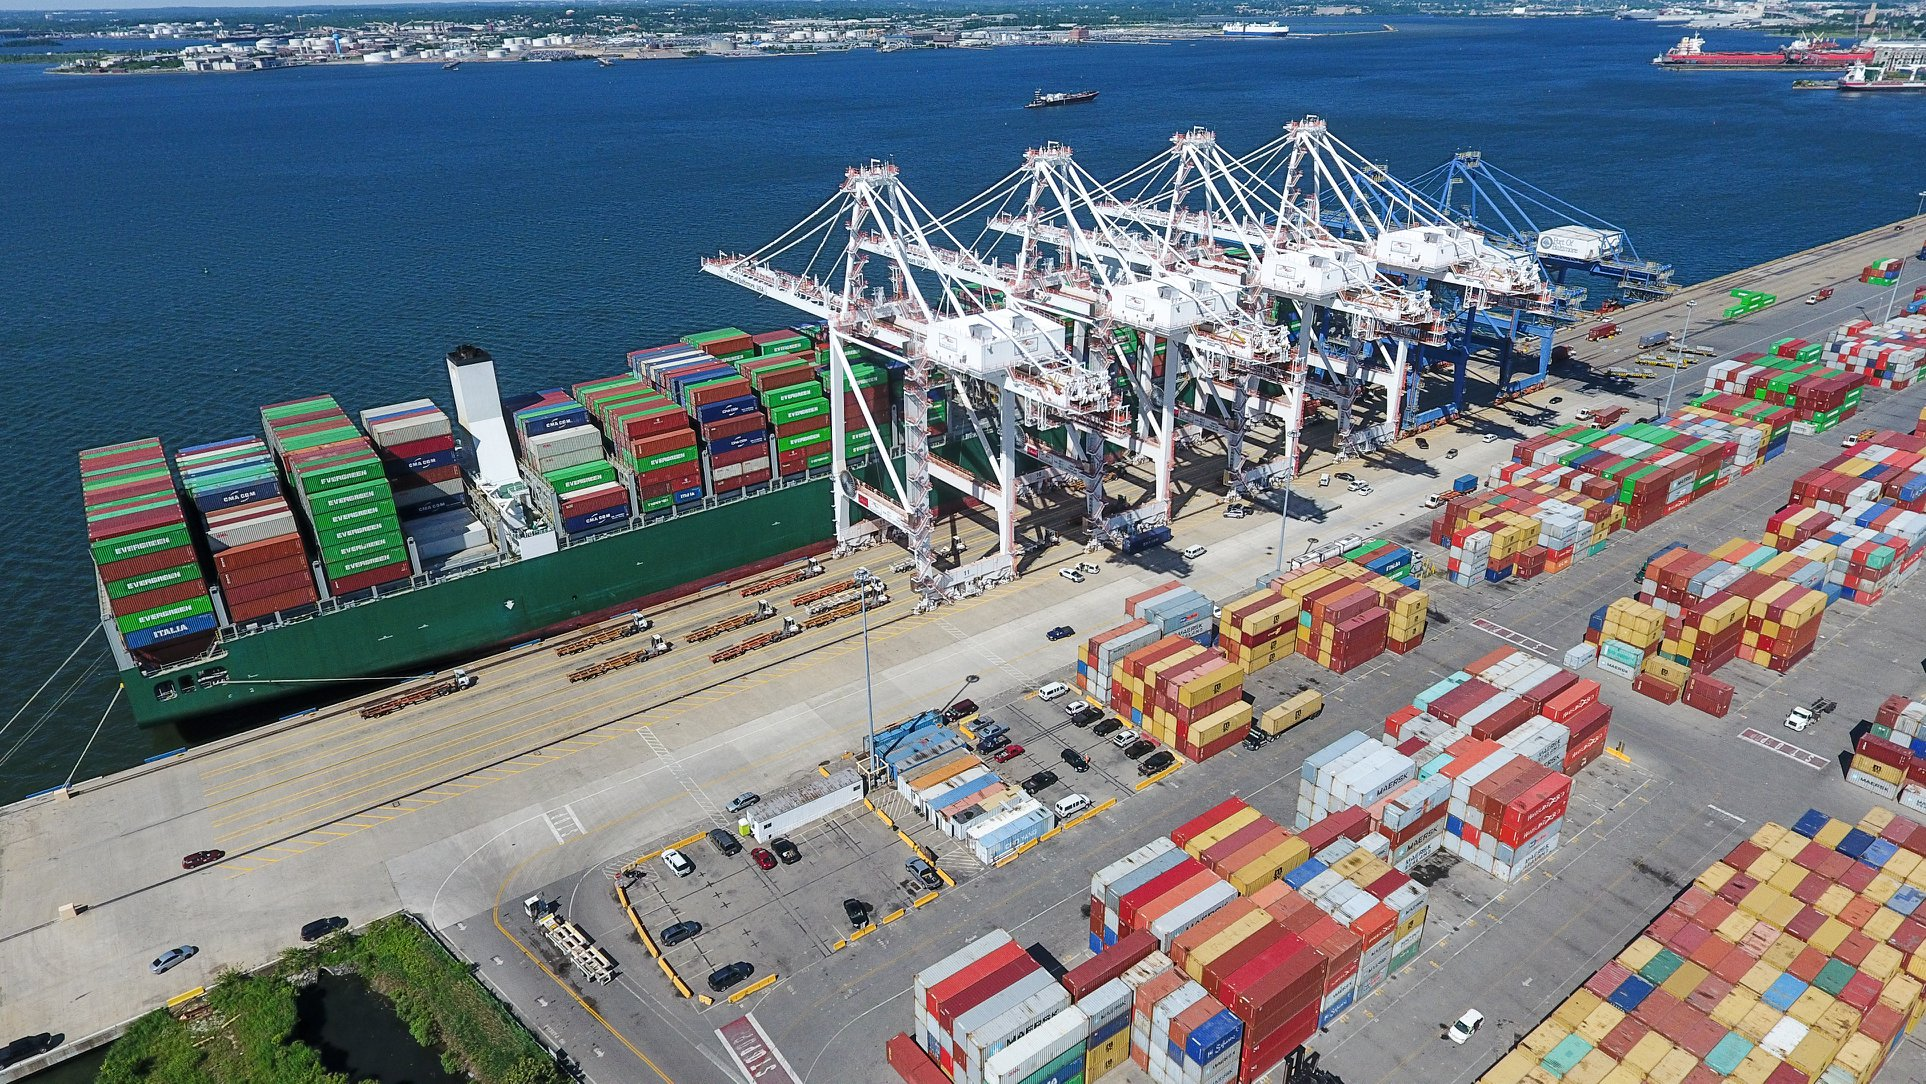 Vessel and containers at the Ports America Chesapeake